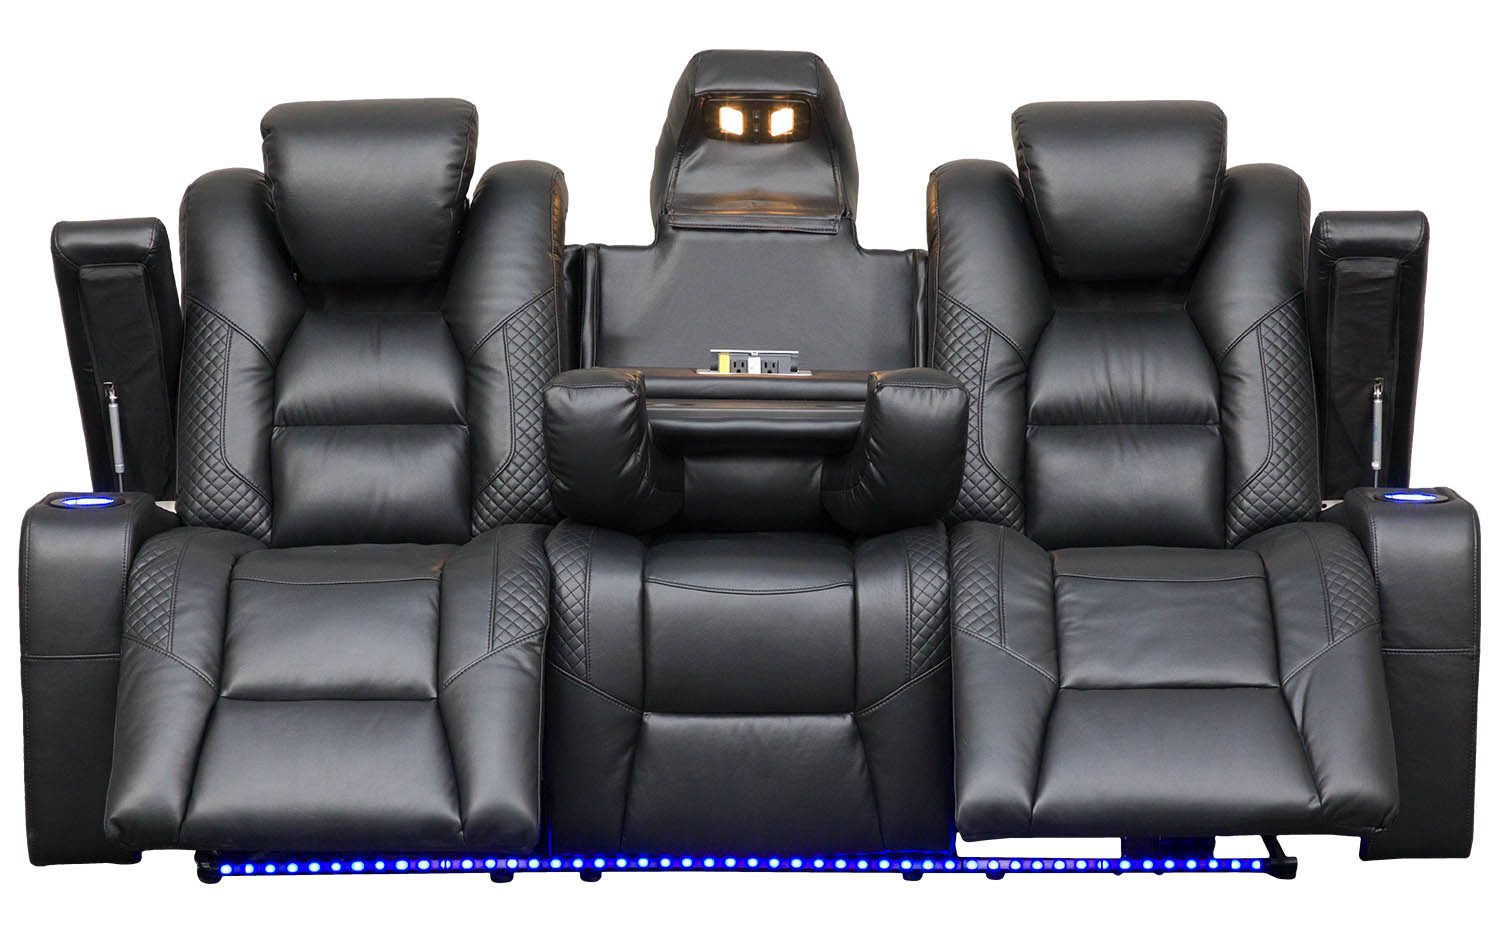 Sofa with a lot of features